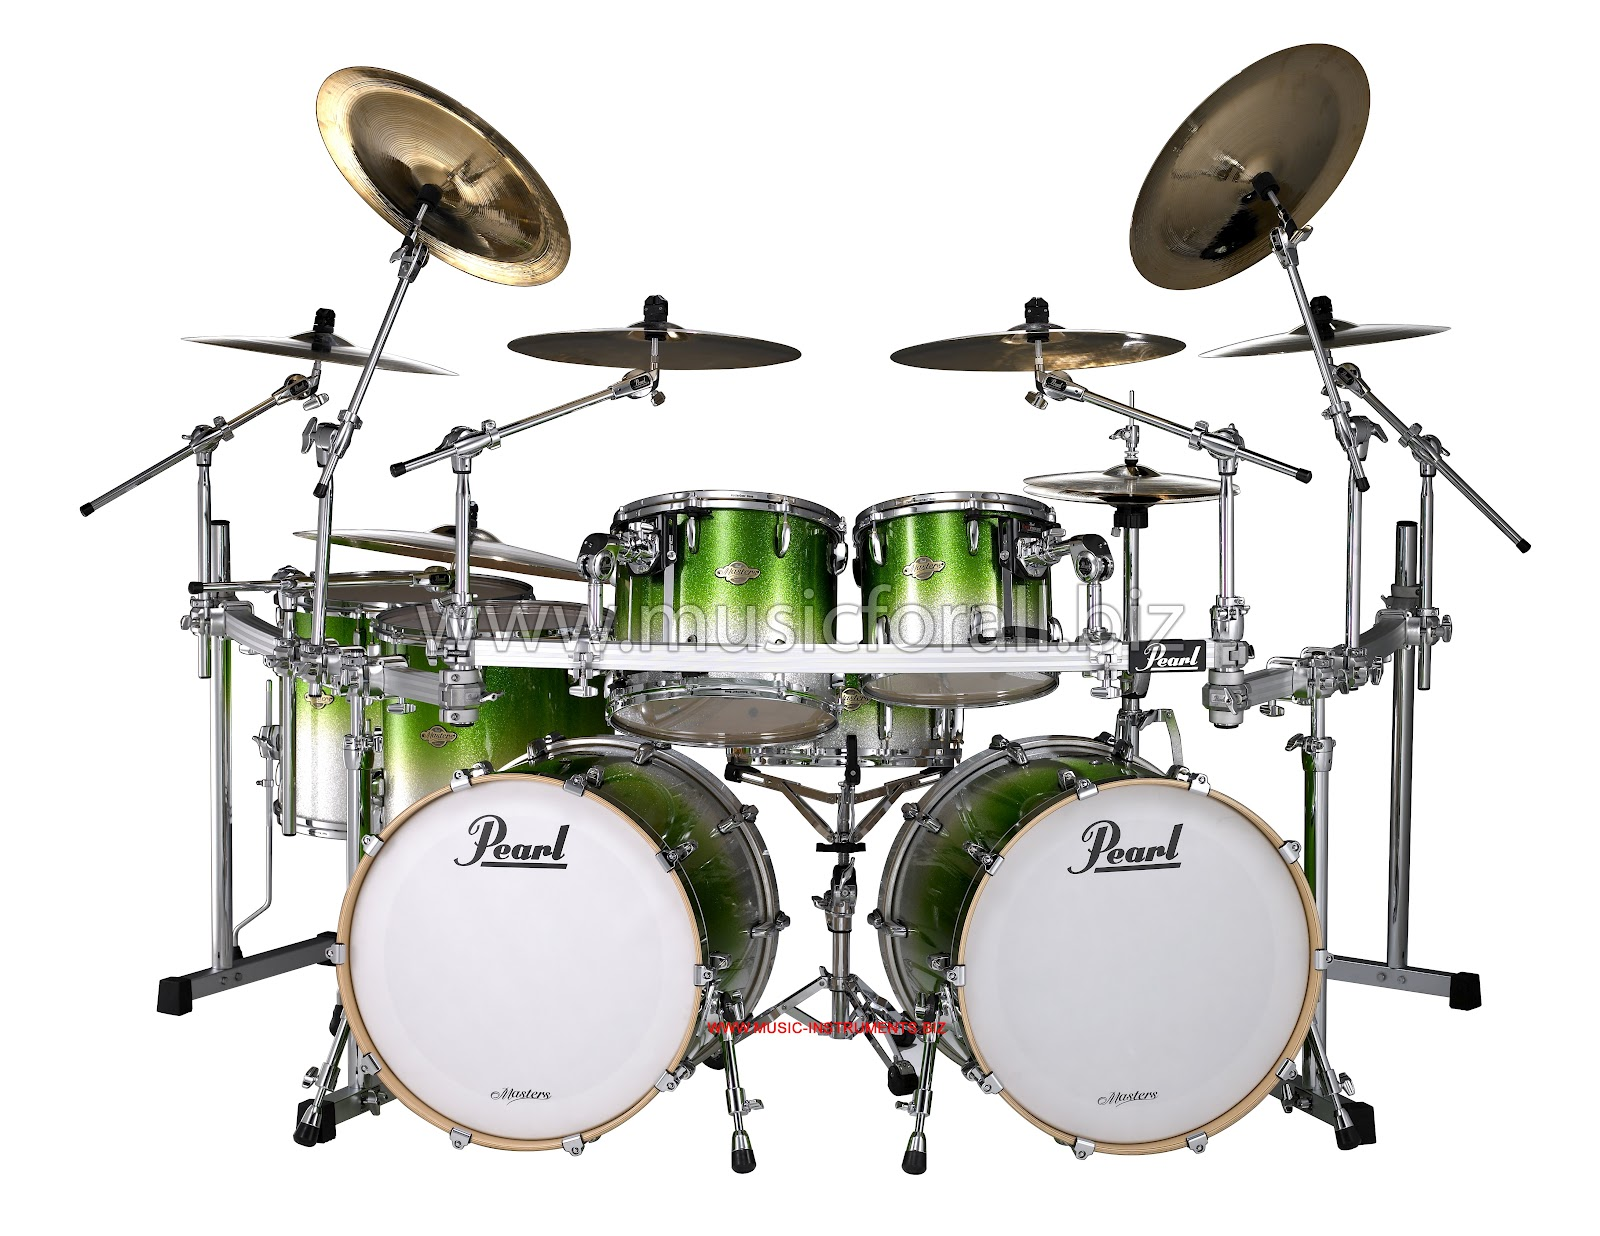 Music Is Our World: Drums